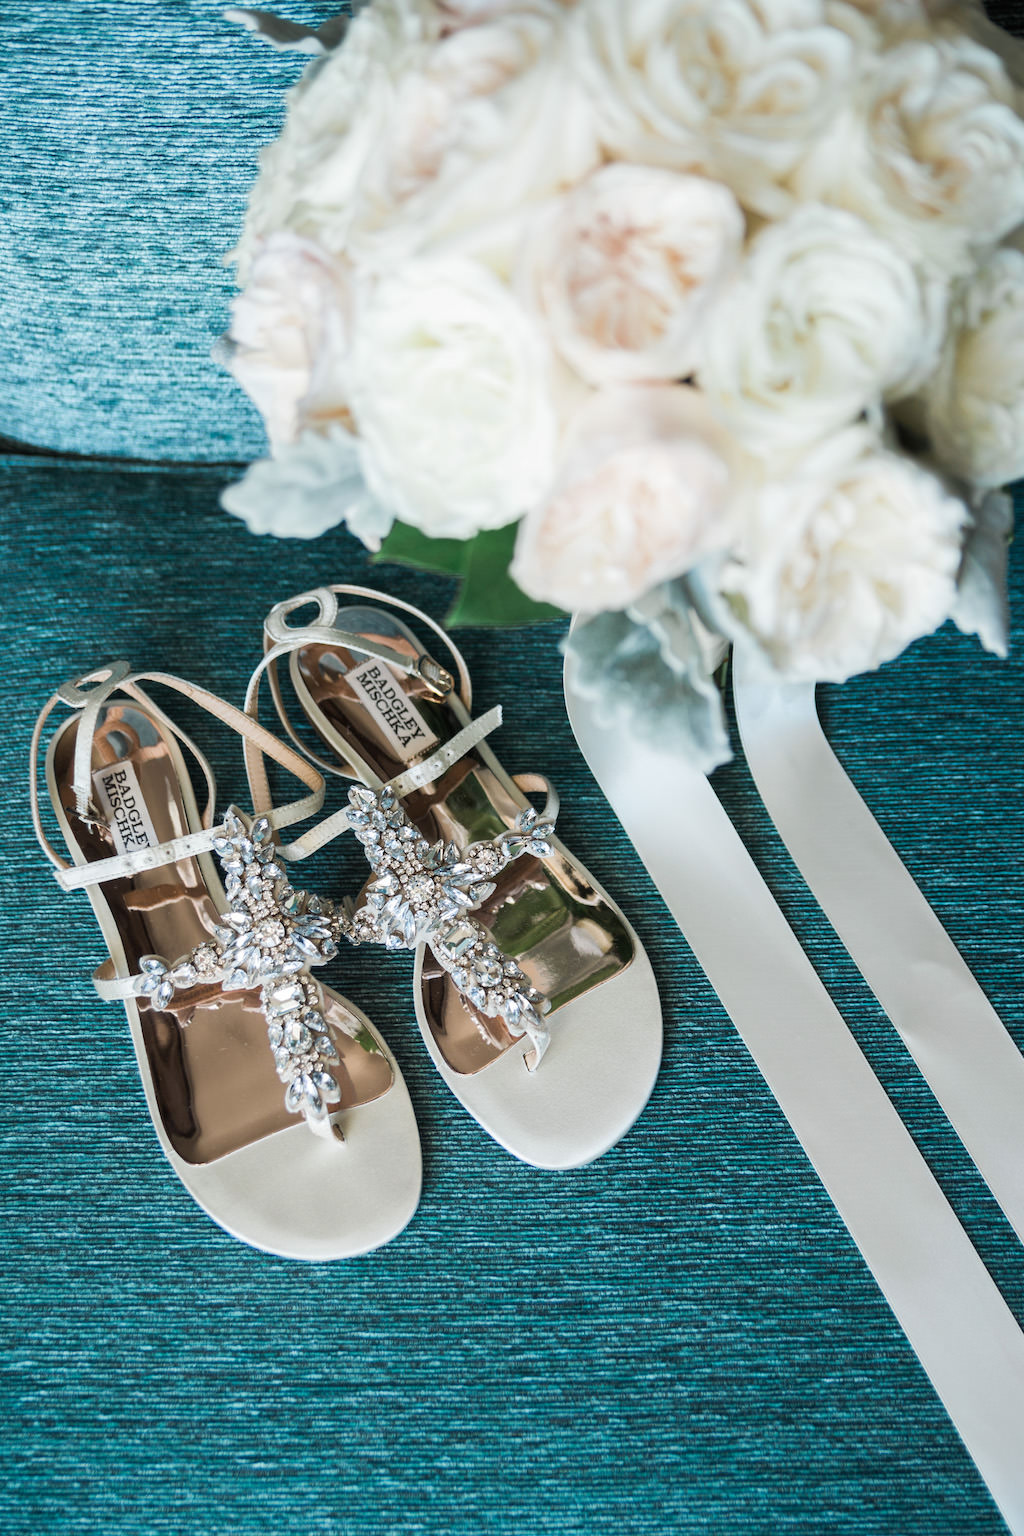 White Rose with Greenery and Ribbon Bridal Bouquet and Jeweled Open Toe Sandal Badgley Mischka Beach Wedding Shoes